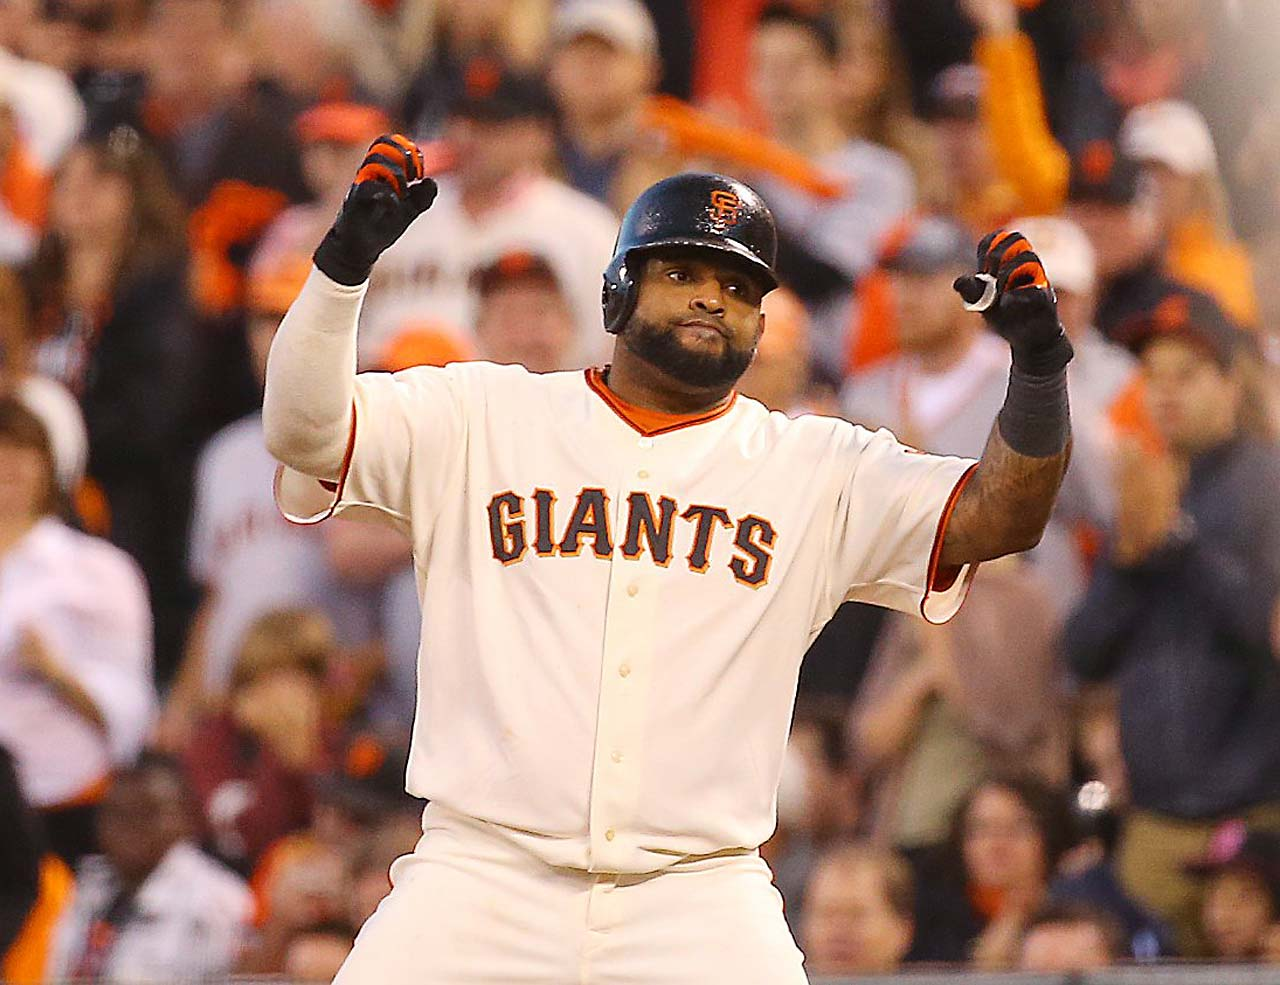 Pablo Sandoval reached base twice and ended up scoring both times.